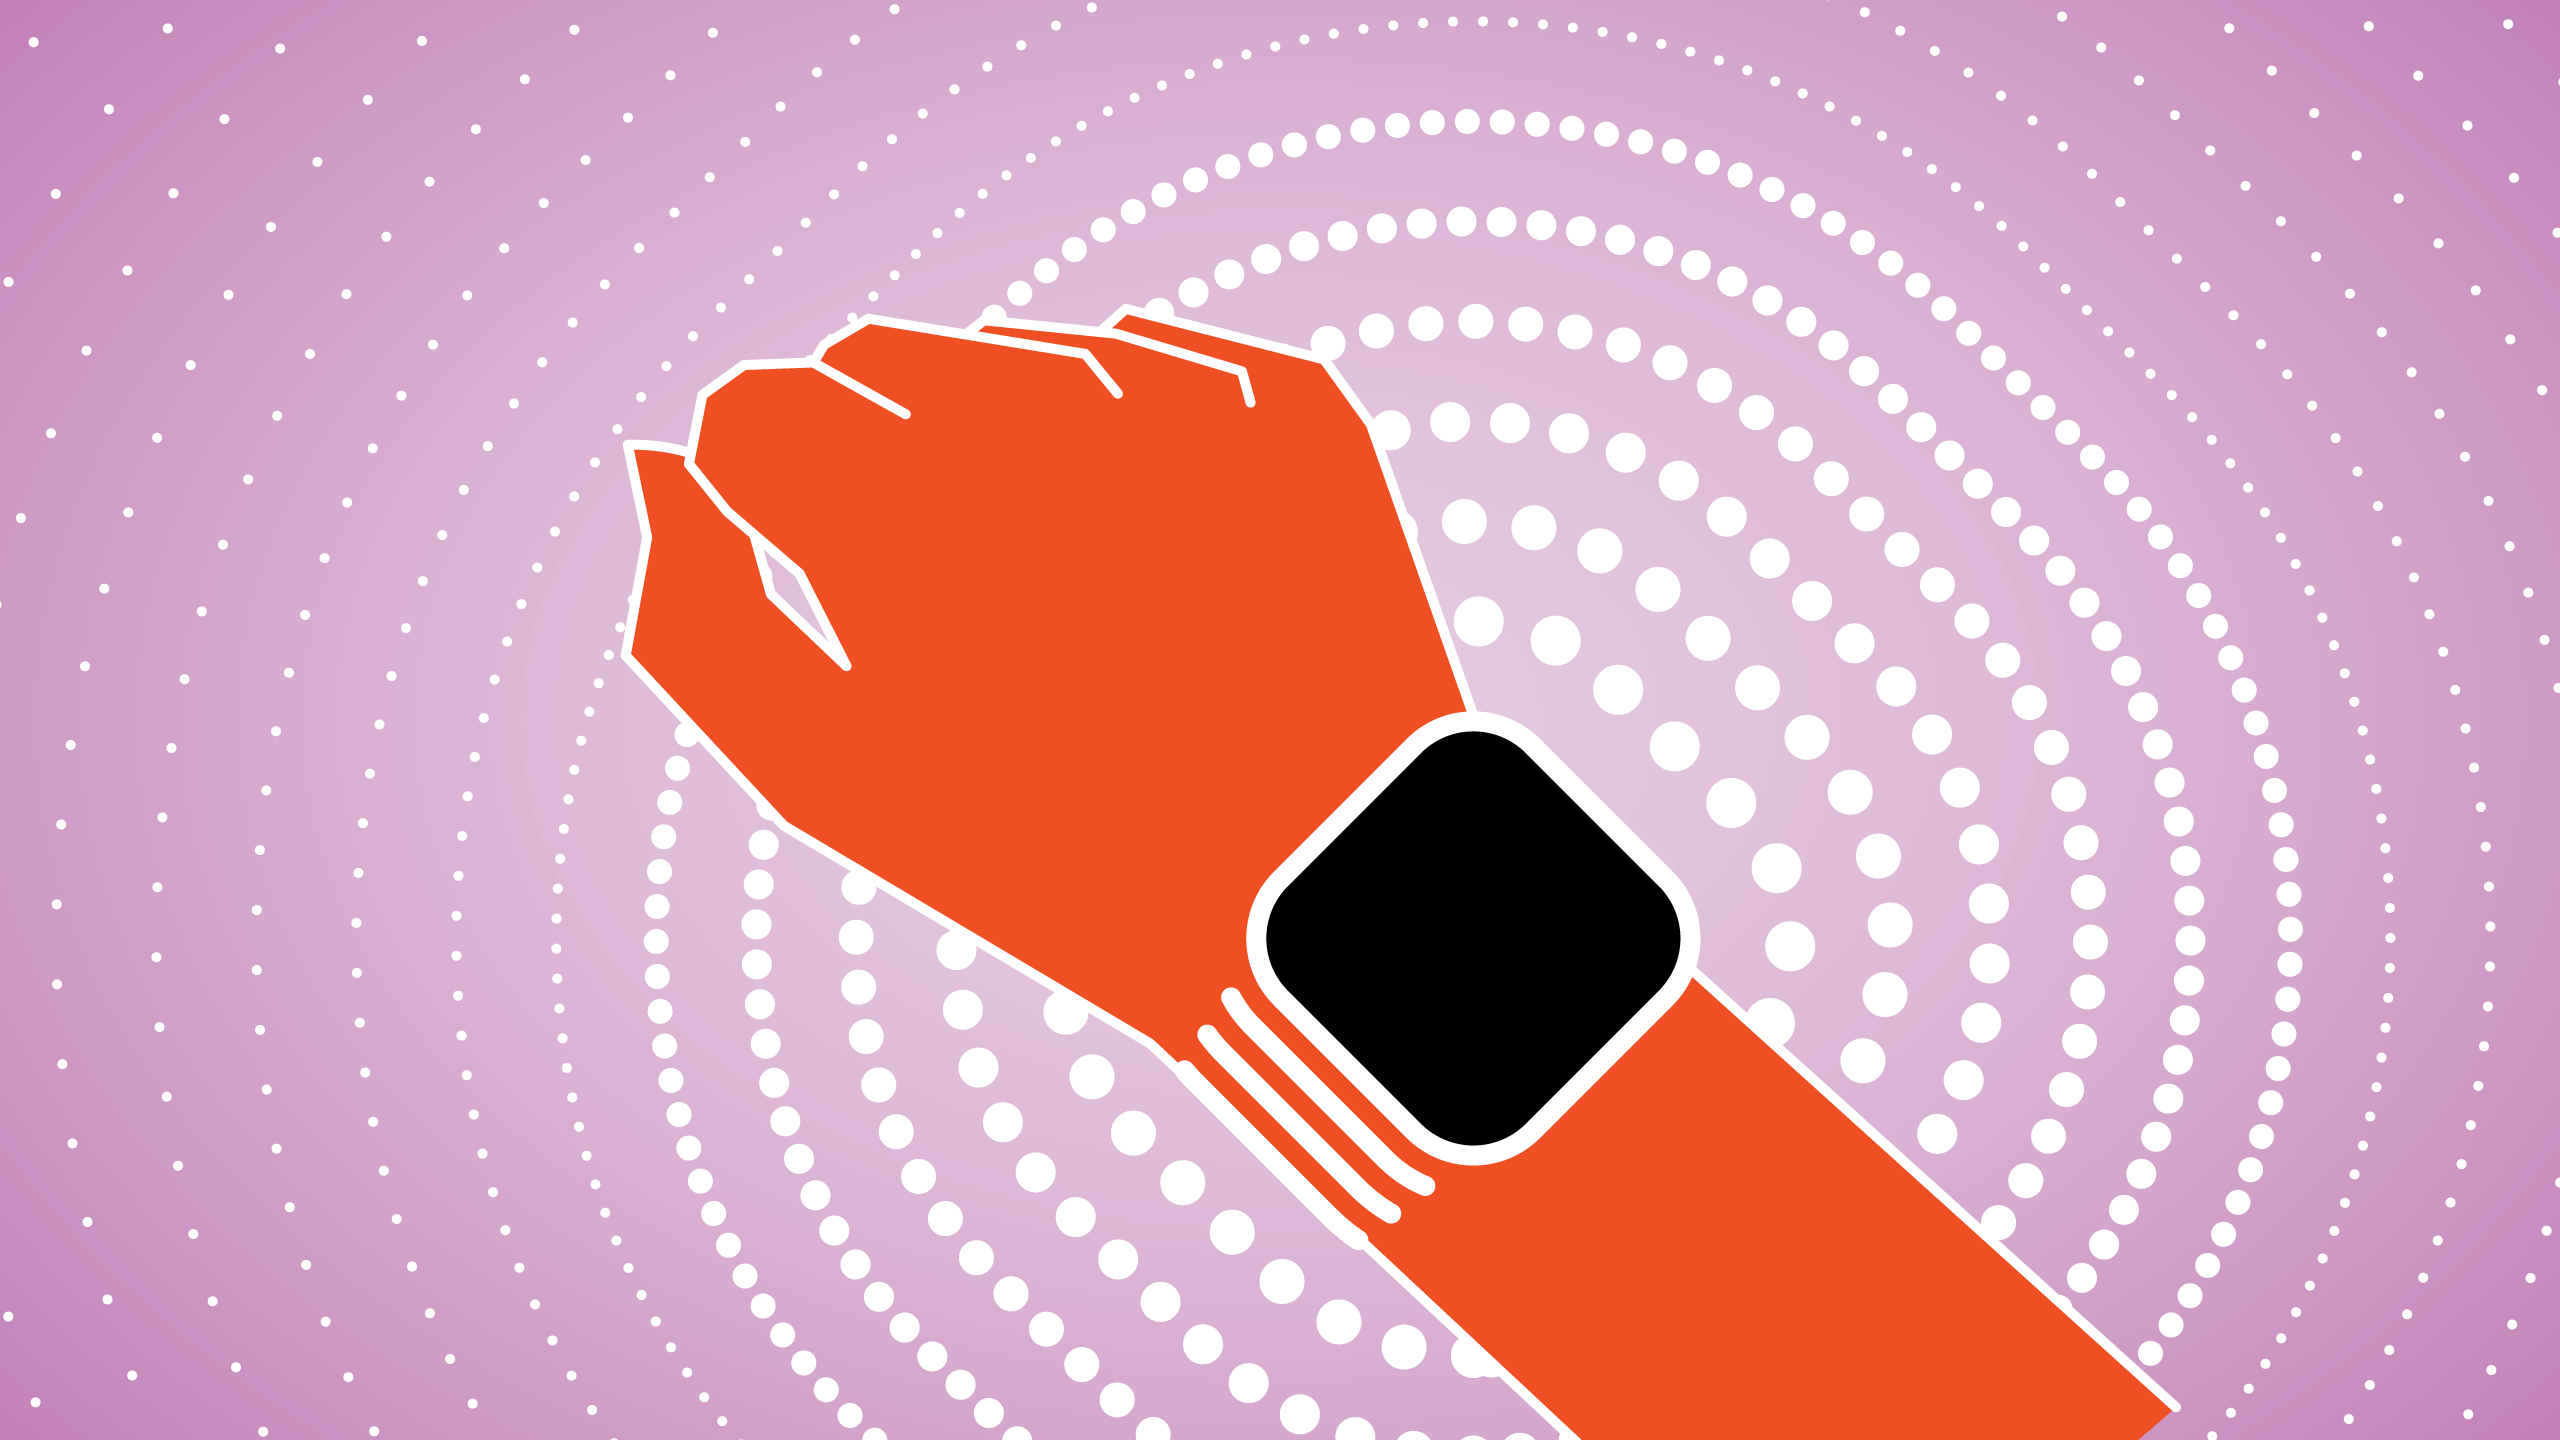 Wearable numbers get a bump, as consumers shift focus to smarter devices